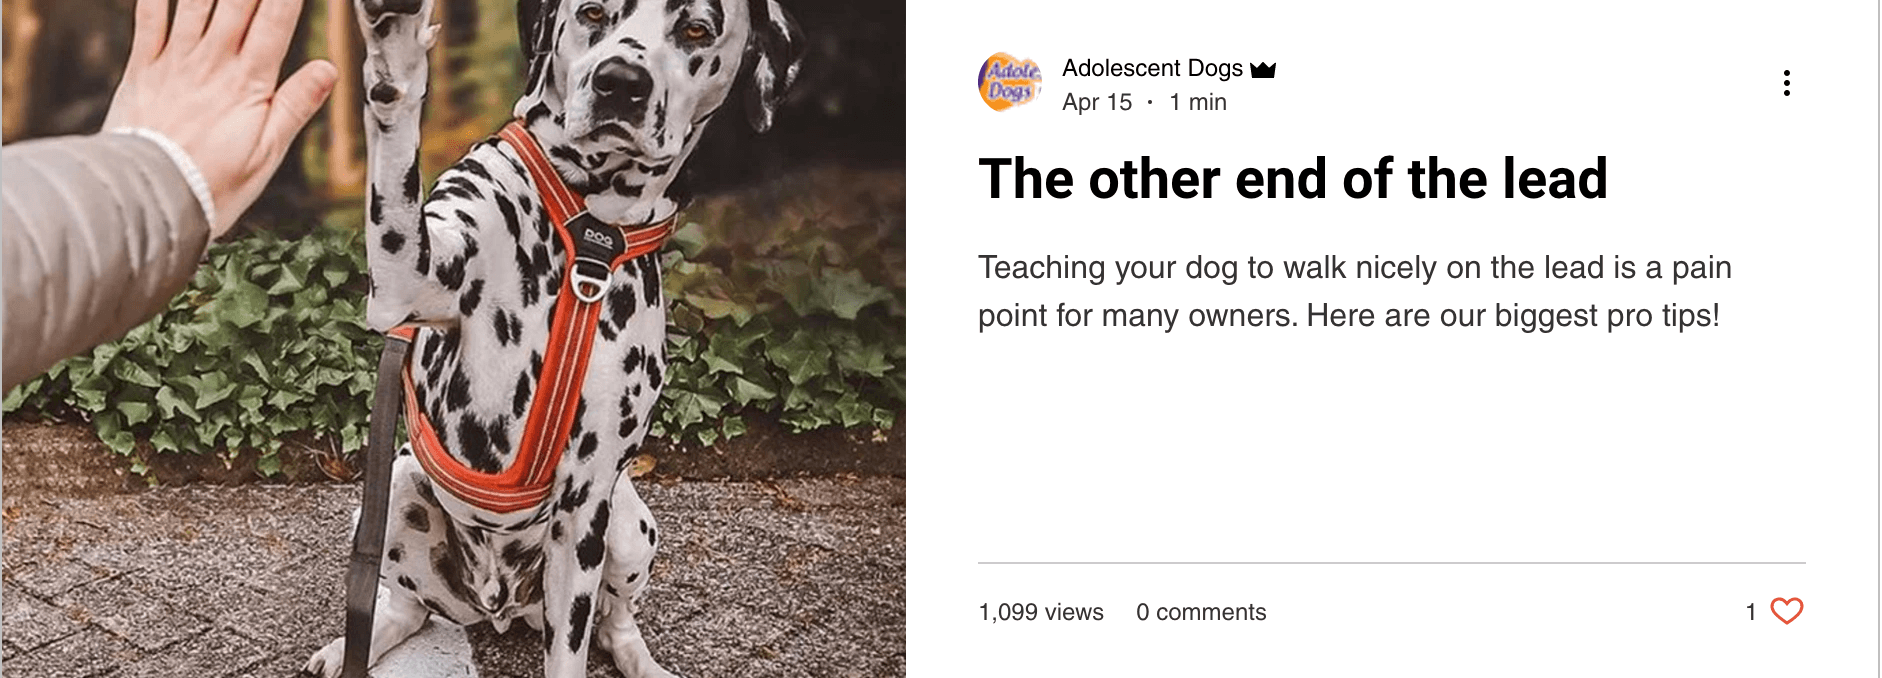 The Other End of teh Lead - blog by Adolescent Dogs